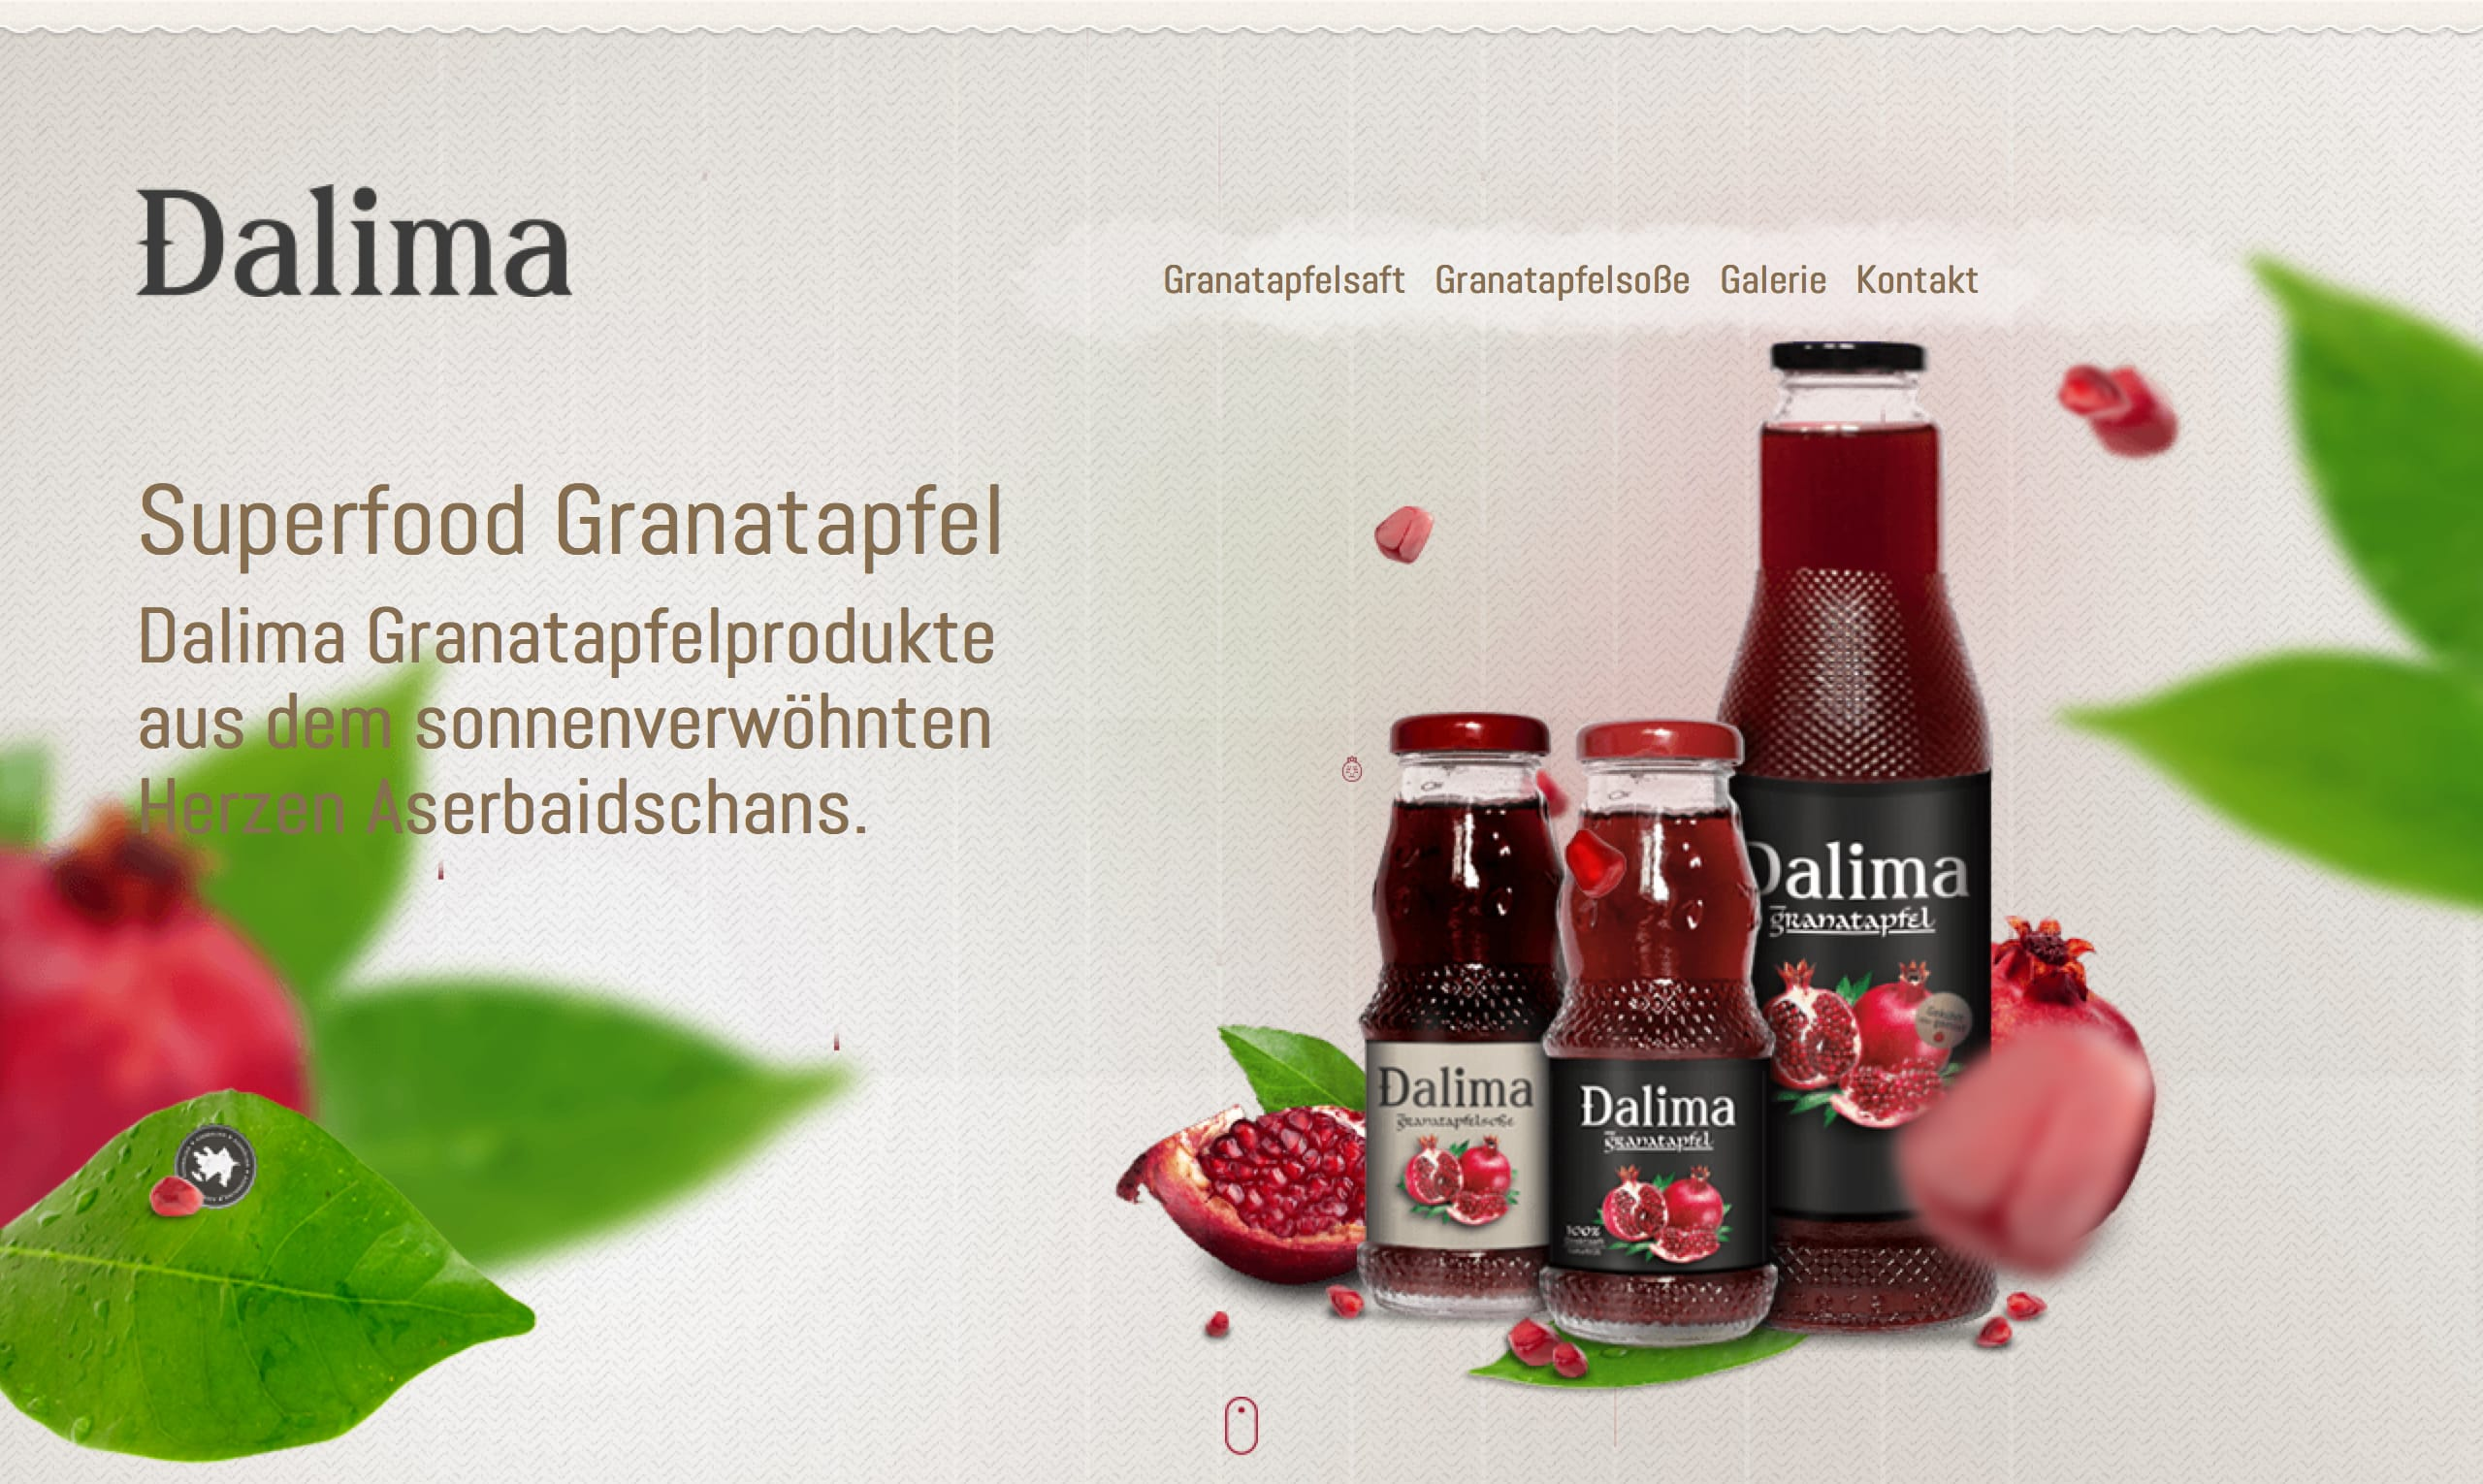 Dalima – Pomegranate Website Screenshot